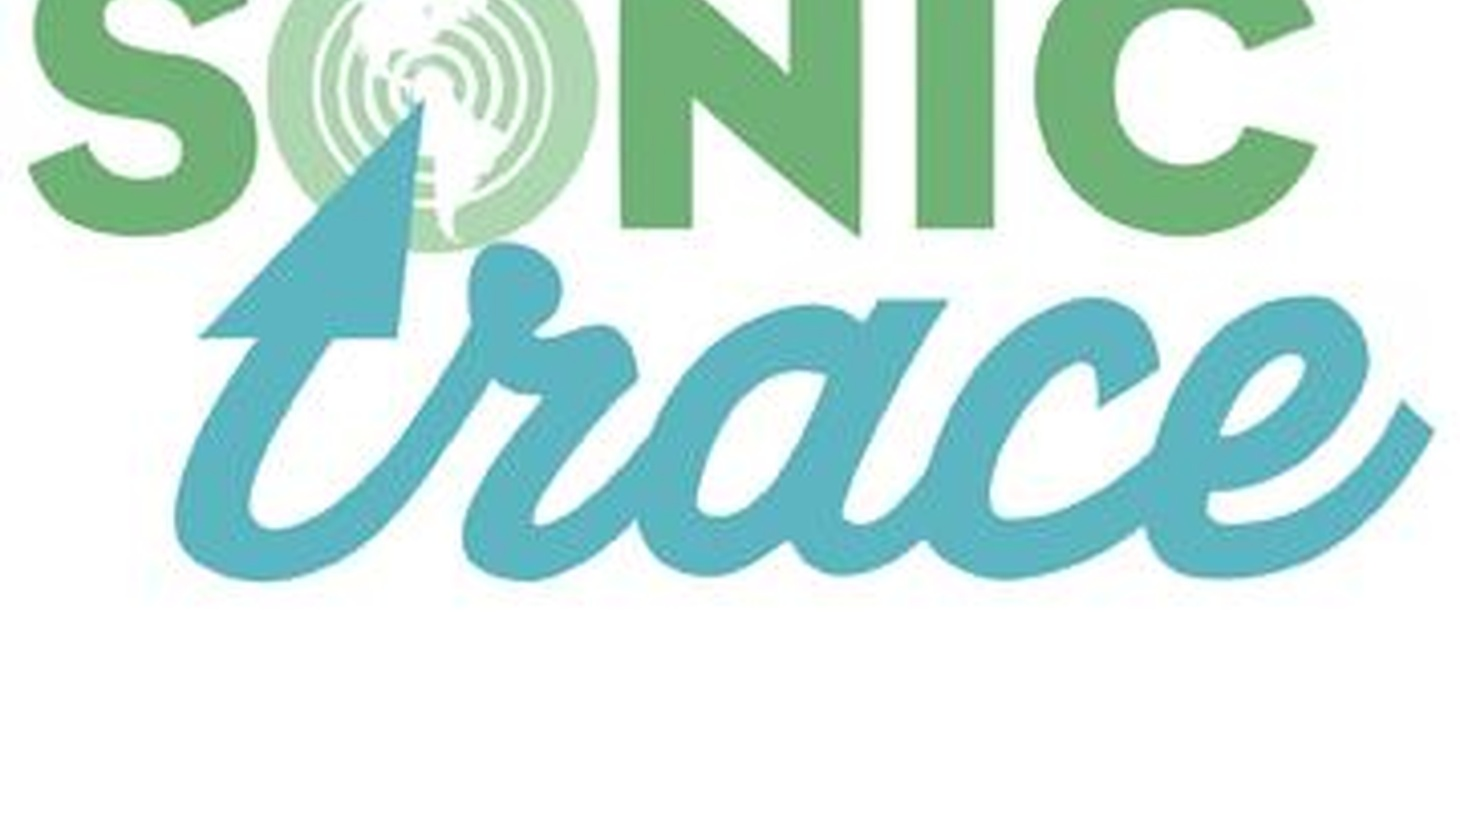 Sonic Trace is KCRW's story-telling project that begins in the heart of Los Angeles and crosses into Mexico and across Latin America.